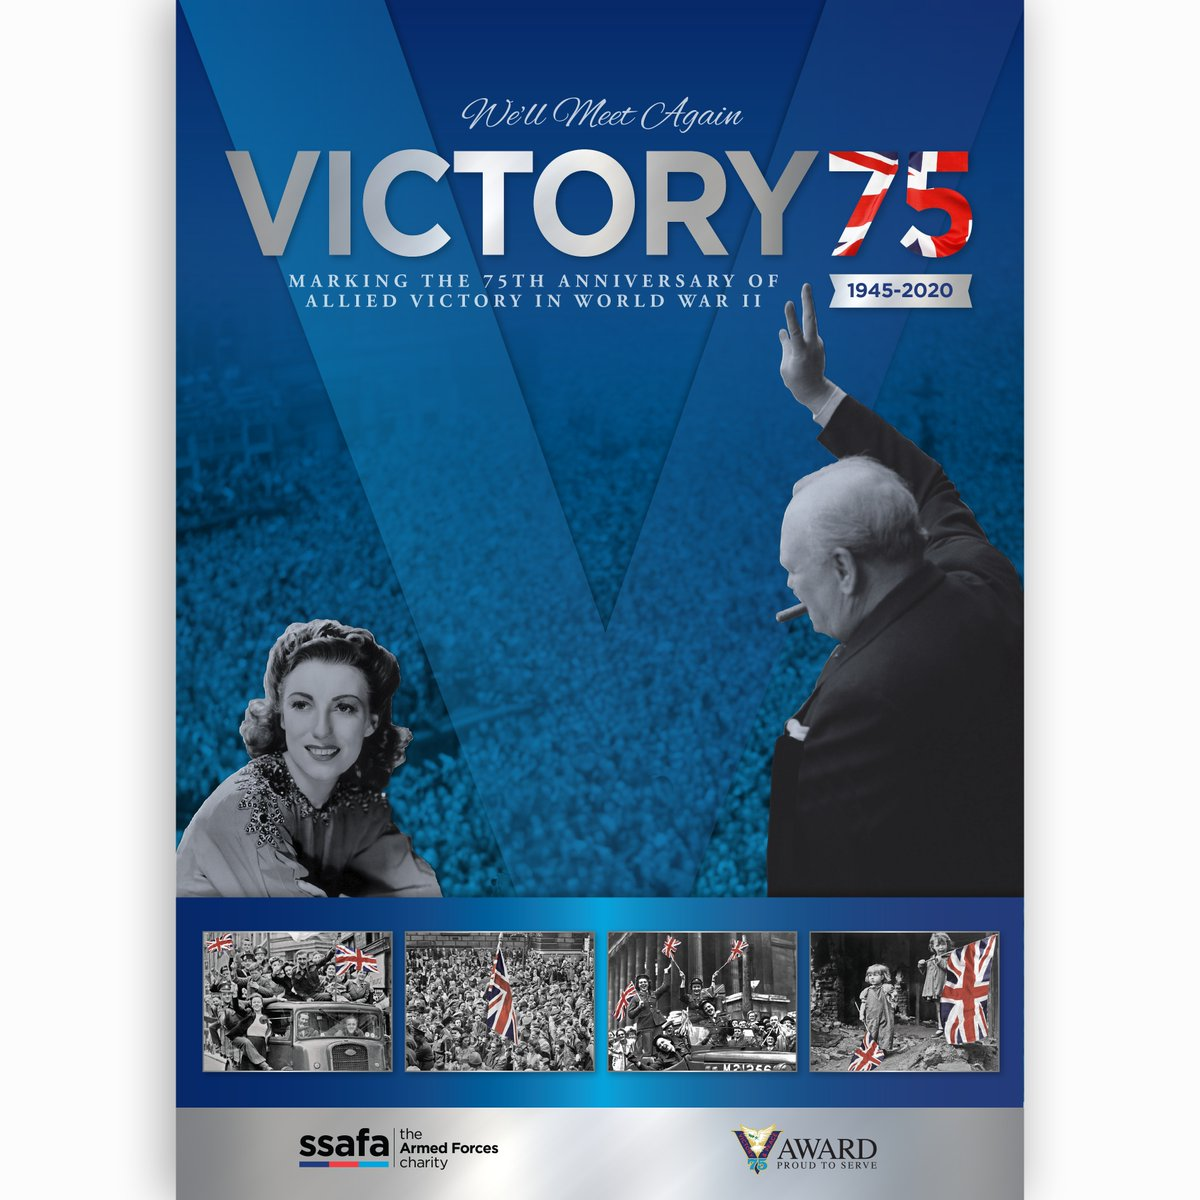 Be part of this year's Victory celebrations by purchasing 'Victory75: We'll Meet Again' - our 140-page, full-colour commemorative album which evokes the spirit of 75 years ago, as well as now.  Price £12.50 (incl. P&P) ▸ https://t.co/9bNgiUnz5I  #VEDay #VEDay75 https://t.co/t4lpMiz8Cs